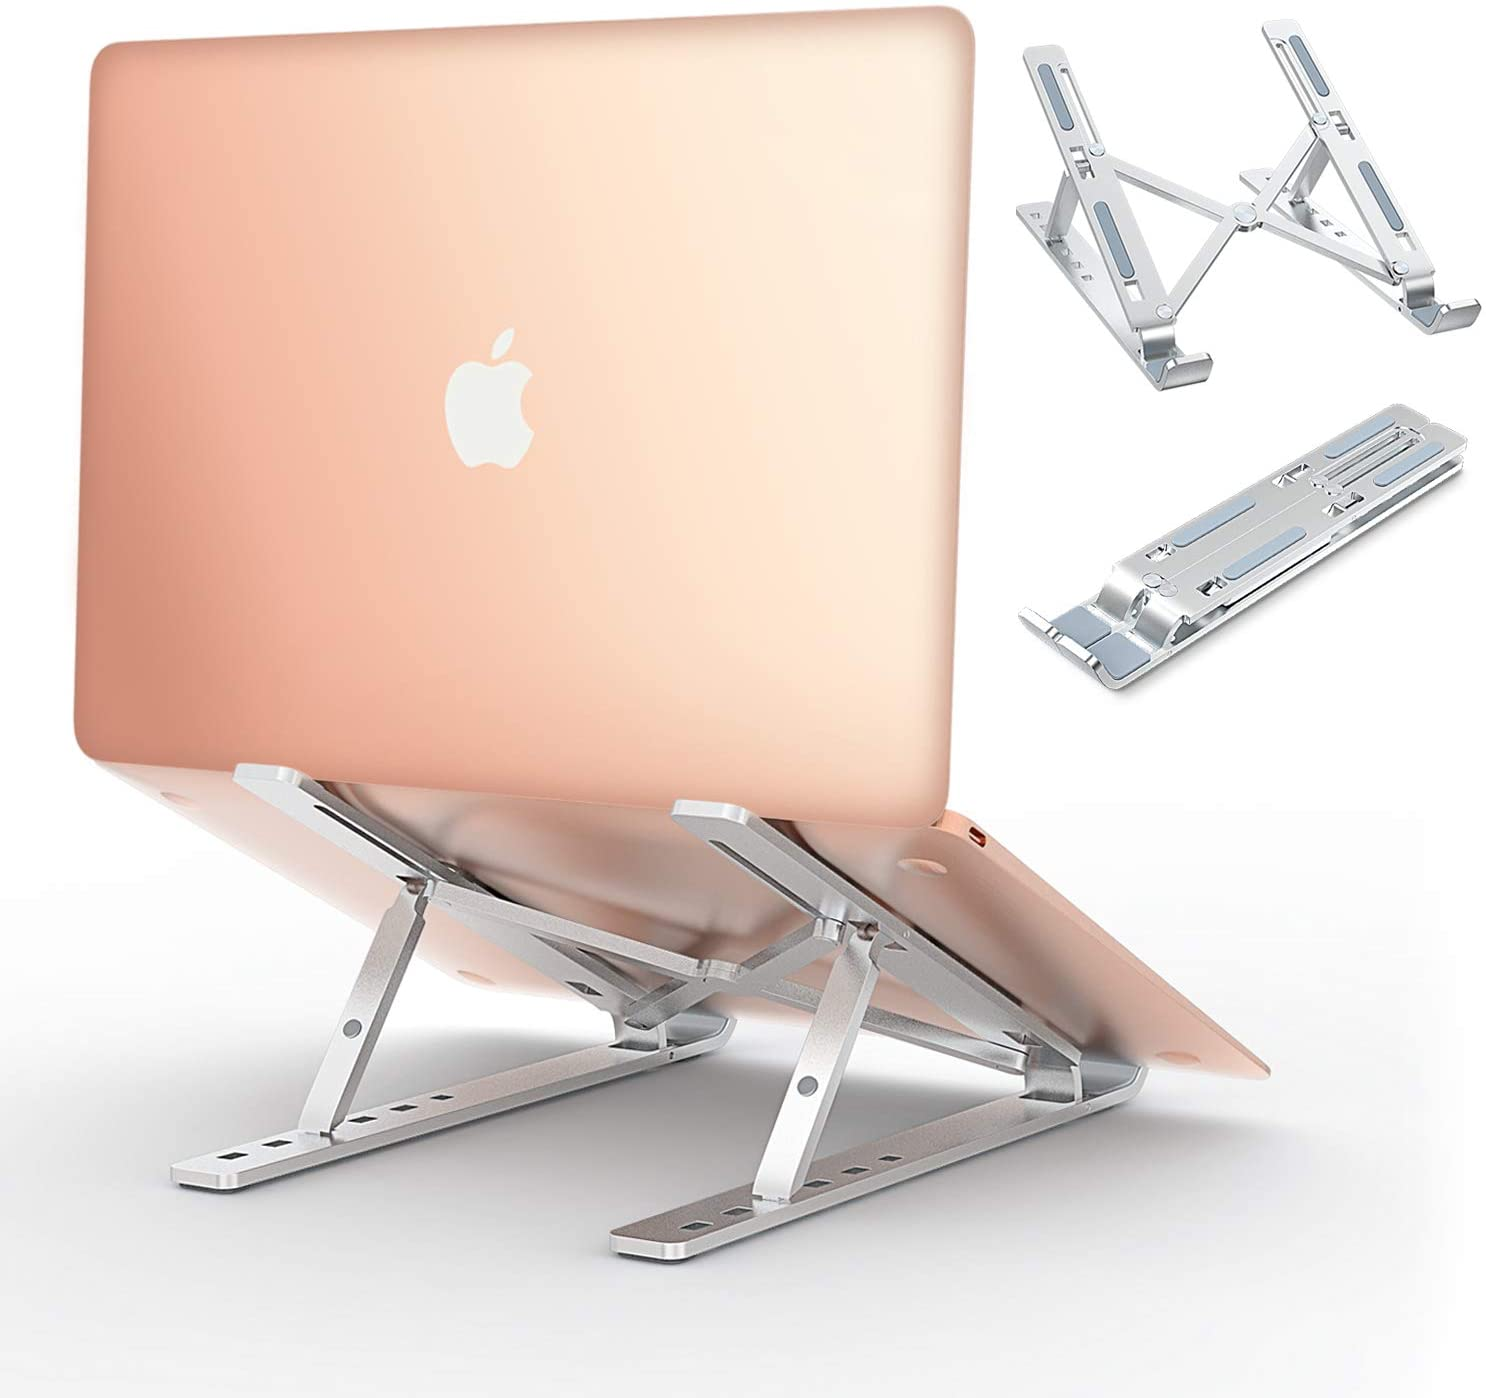 Comsoon Laptop Stand, Adjustable Portable Laptop Holder for Desk, Cooling Aluminum Ventilated Notebook Riser for MacBook Air Pro, Dell XPS, More 10-15.6 inches PC Computer, Tablet